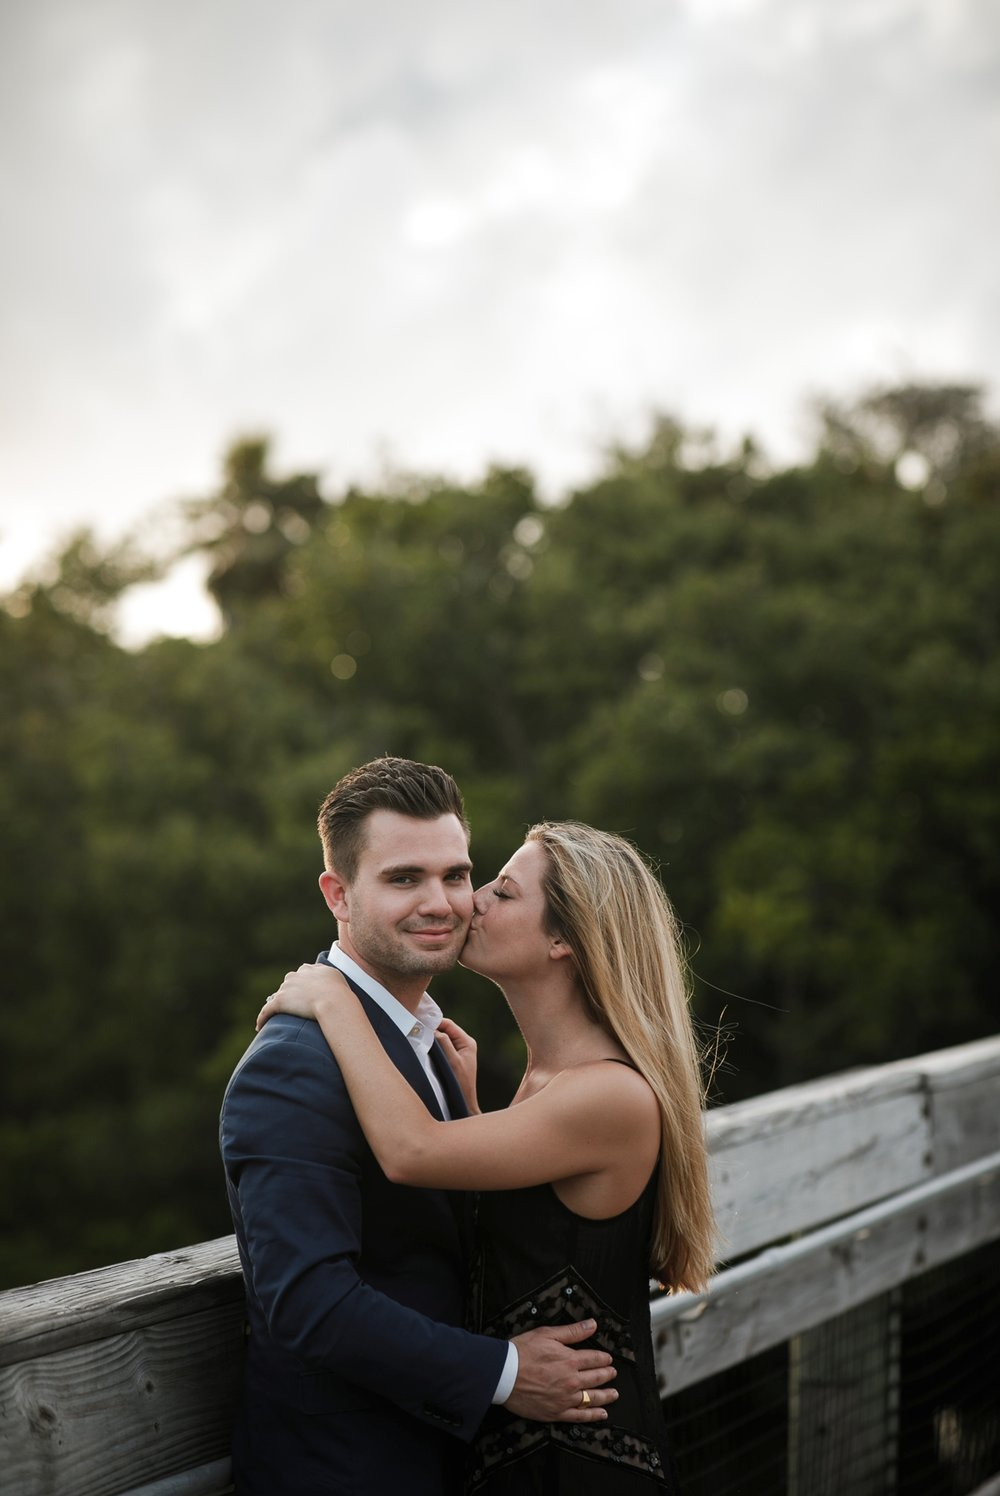 Florida-engagement-photographer-weddings